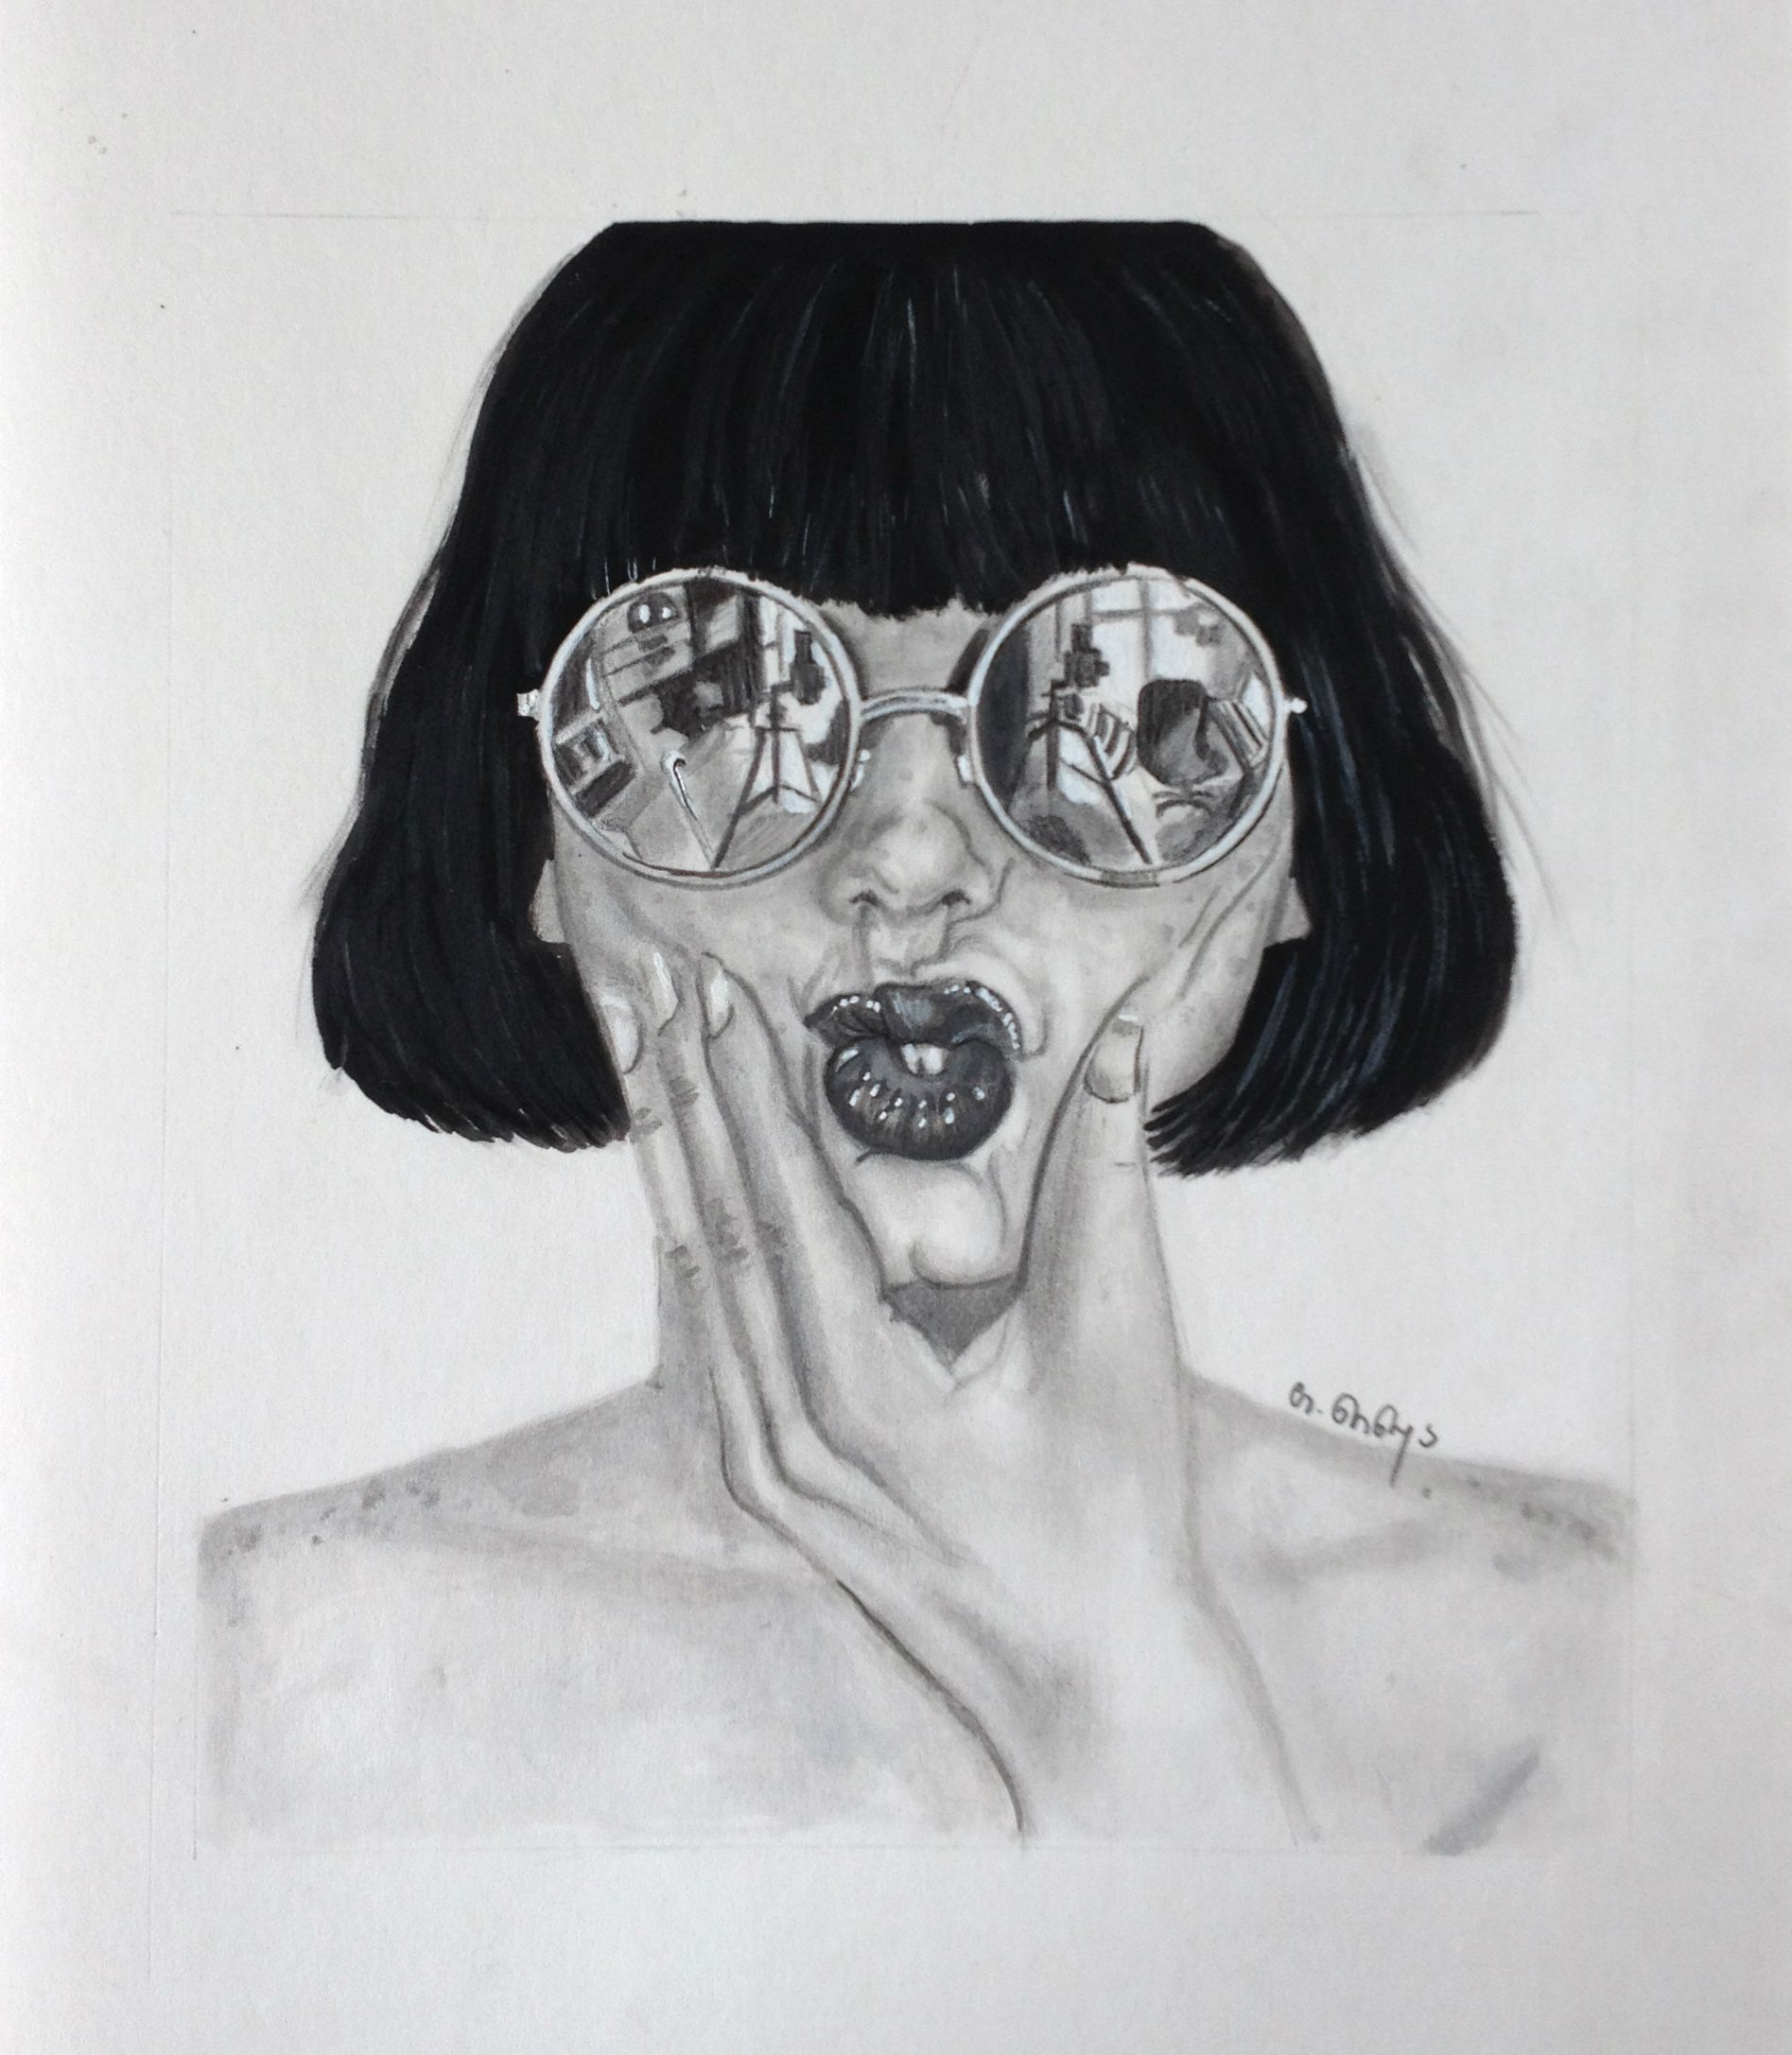 svg black and white Drawing reflections sunglass reflection. Art artist pencil watercolorpencil